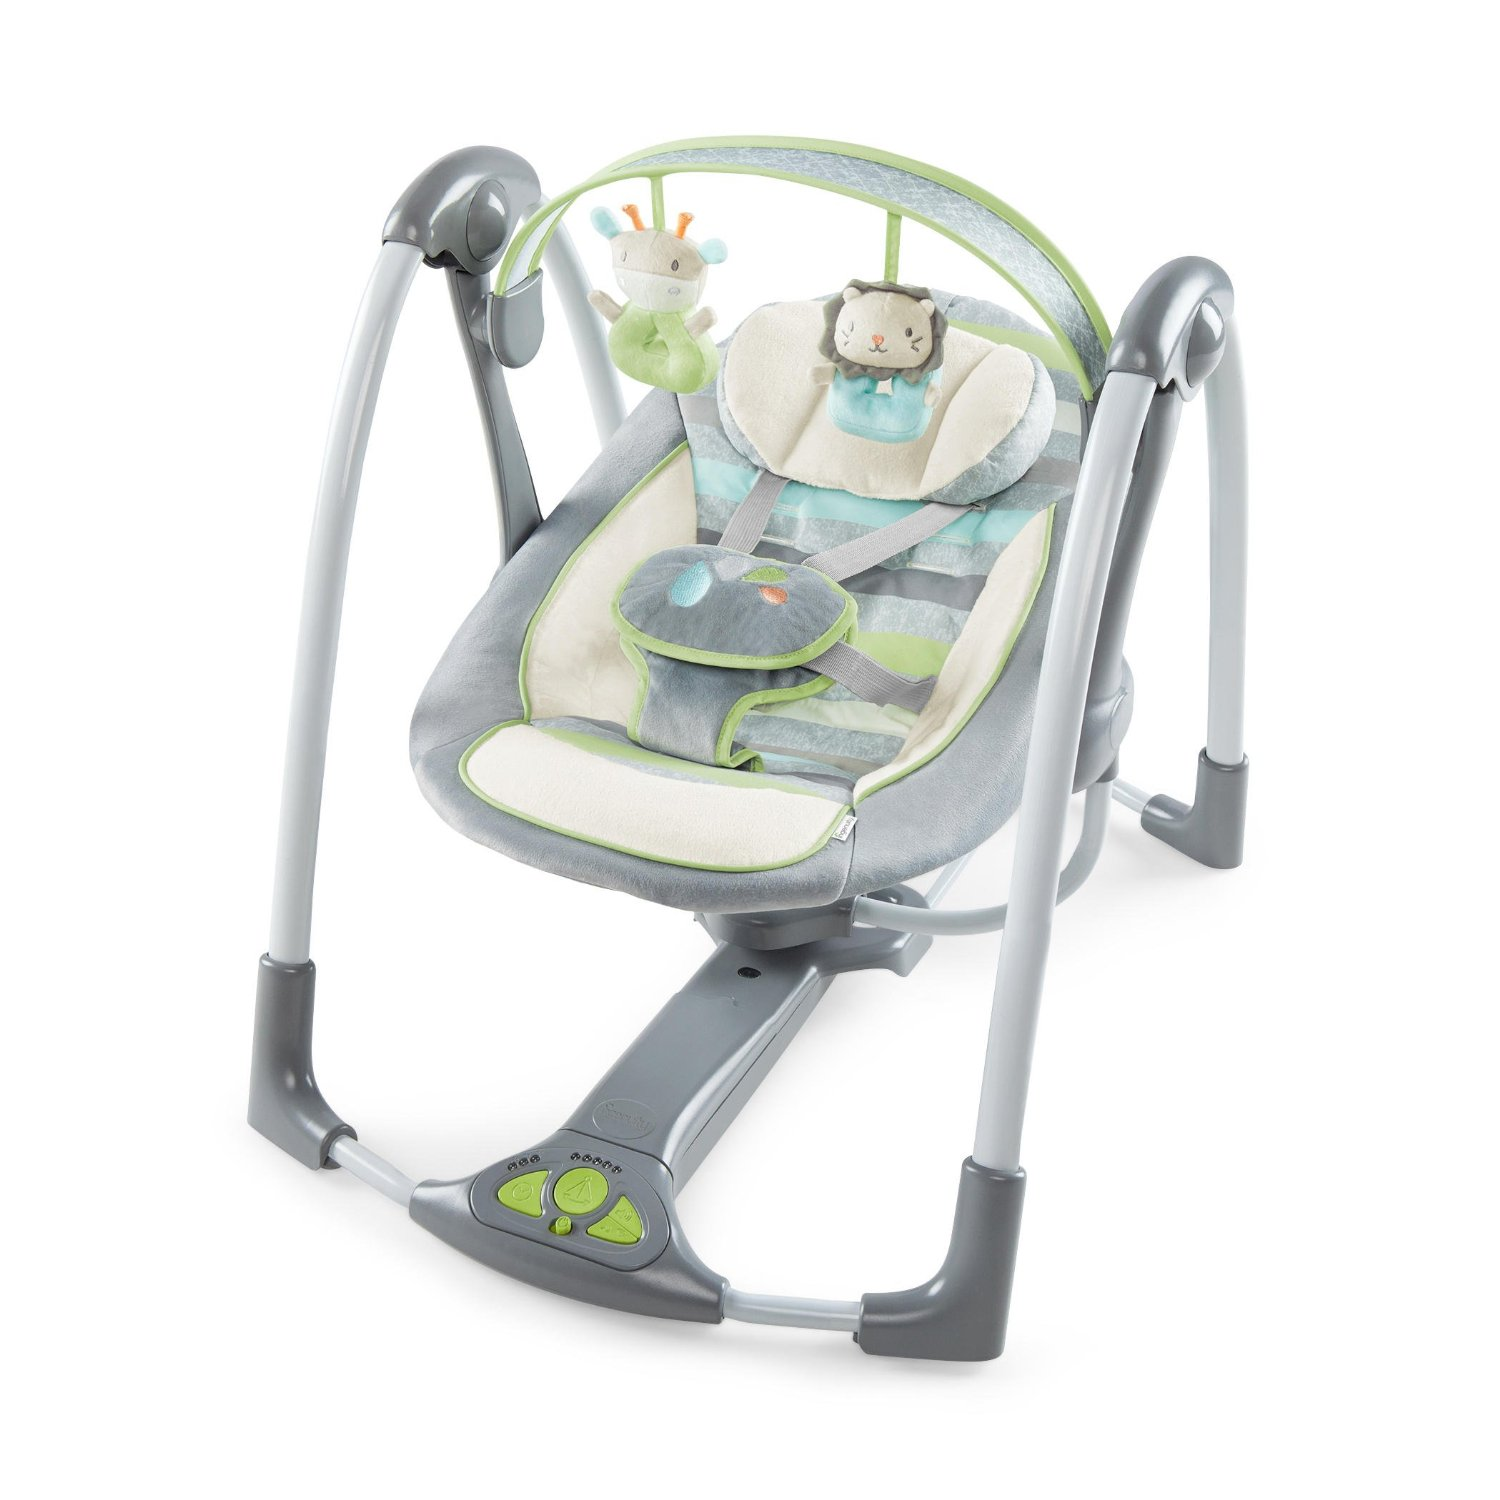 ingenuity power adapt portable swing, best baby swing